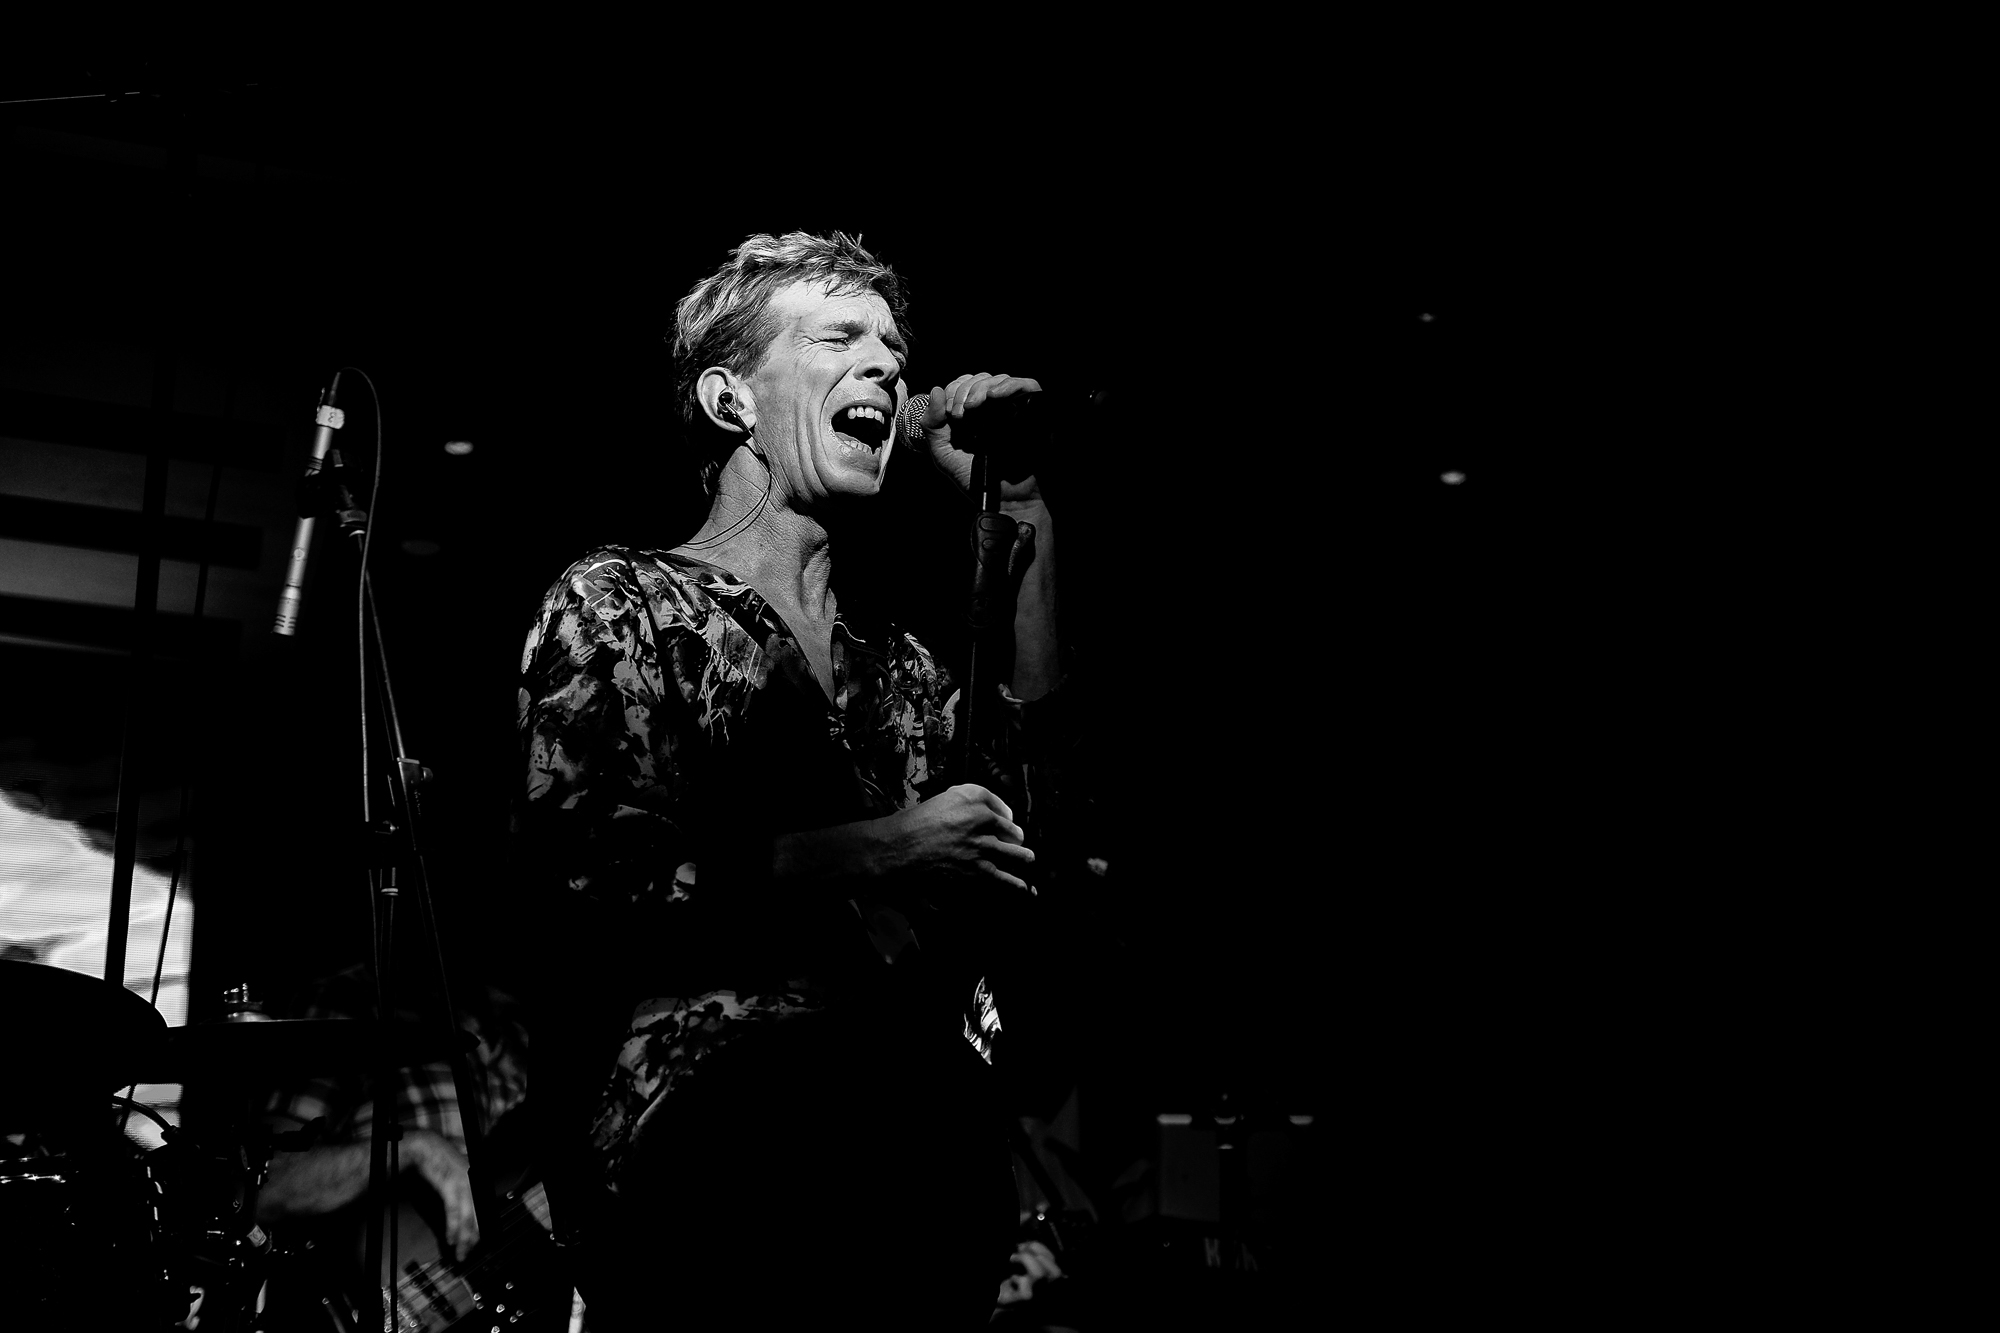 photography events Singapore photographer concert music Paul roberts David bowie